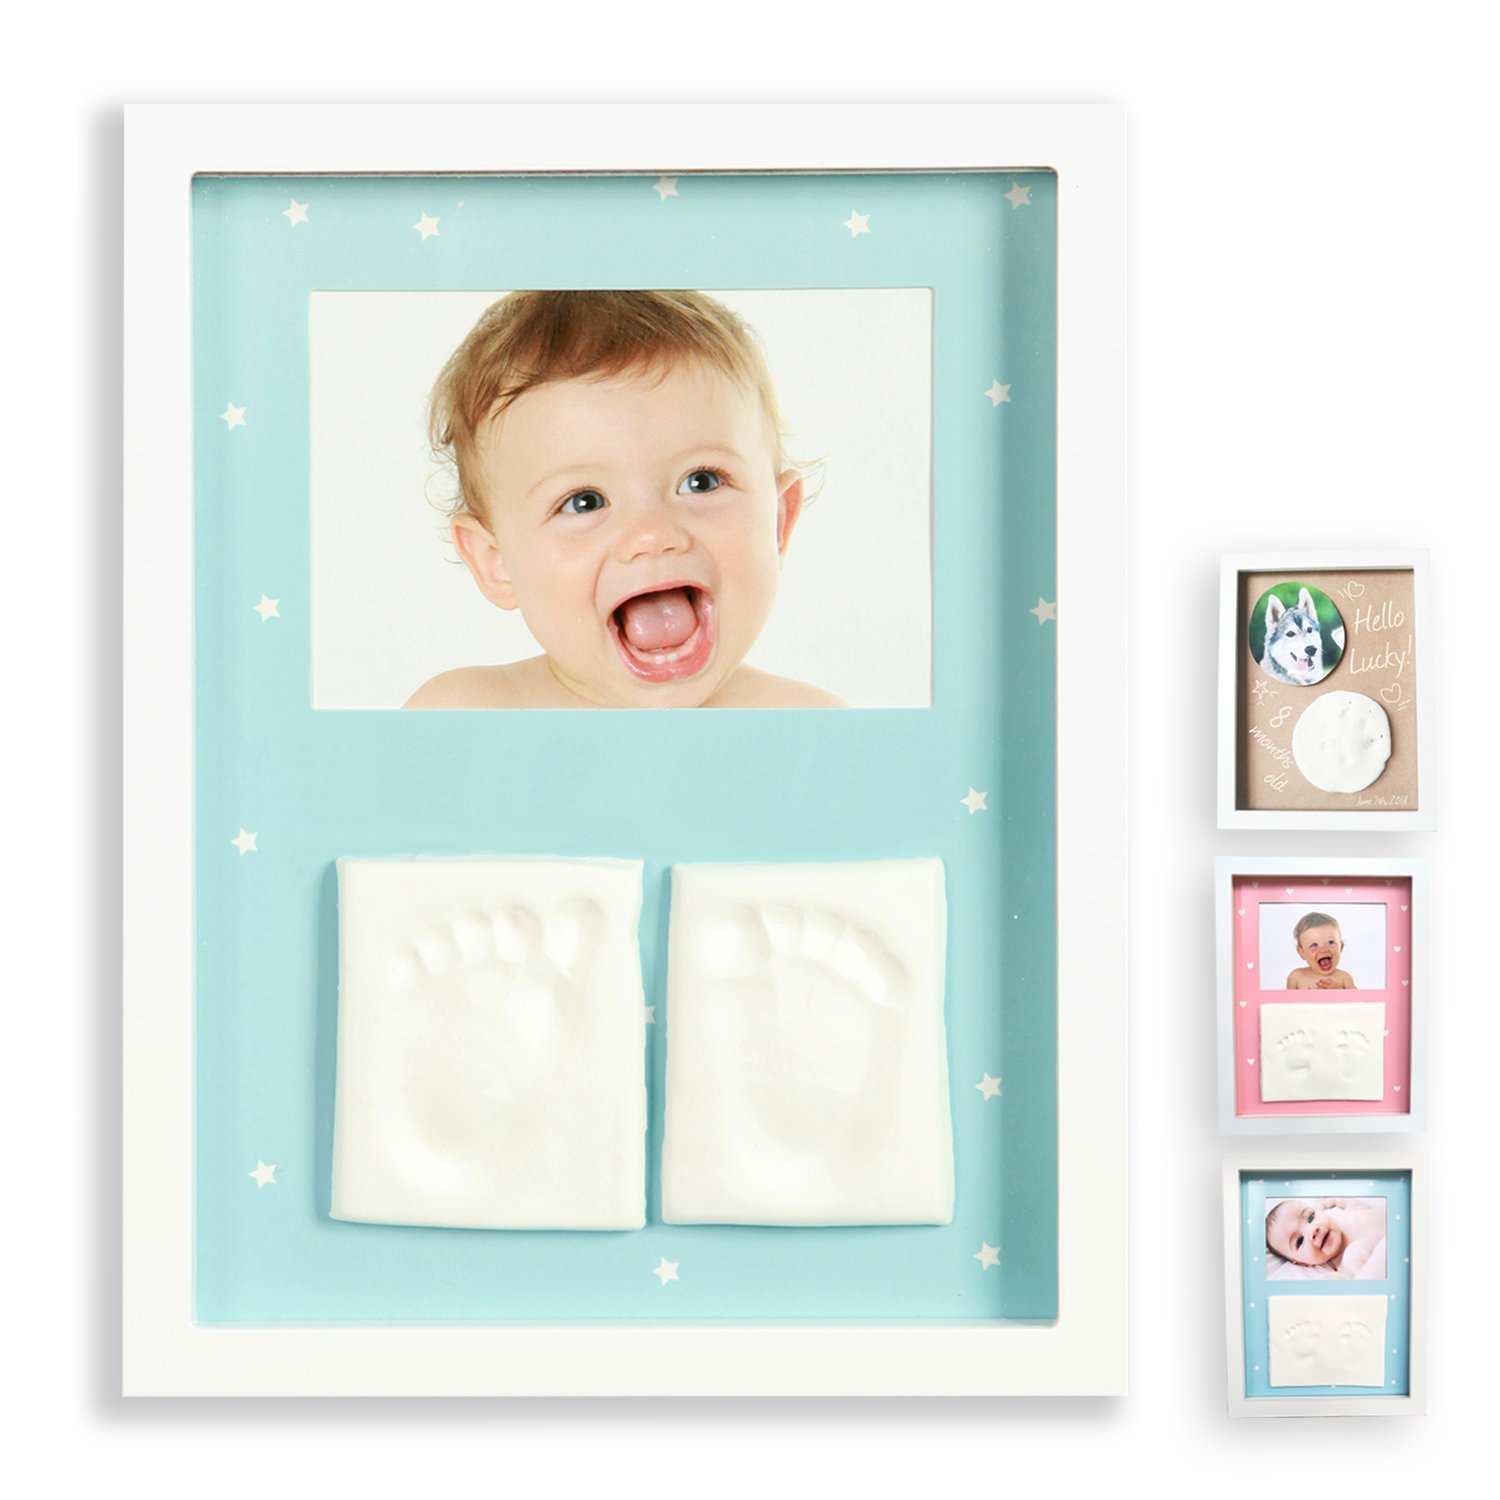 Baby Handprint Kit - Baby Picture Frame, Baby Footprint kit Photo Frame, Perfect for Baby Boy Gifts,Top Baby Girl Gifts, Baby Shower Gifts, Newborn Baby Keepsake Frames